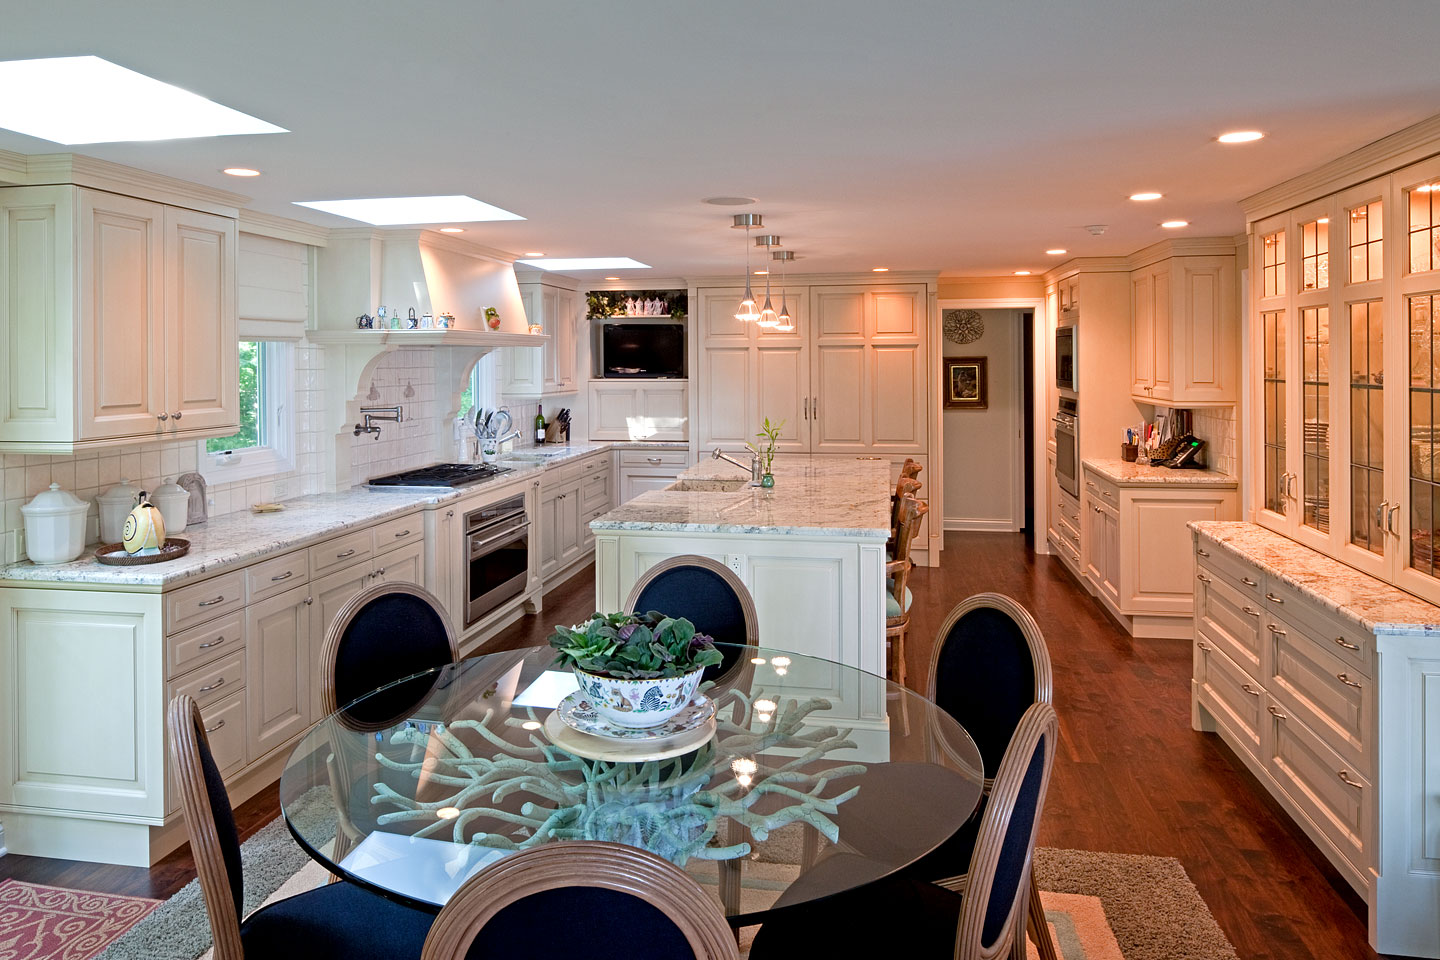 a corner perspective of a large modern kitchen, featuring high-end custom cabinetry, photographed by Jacob Rosenfeld